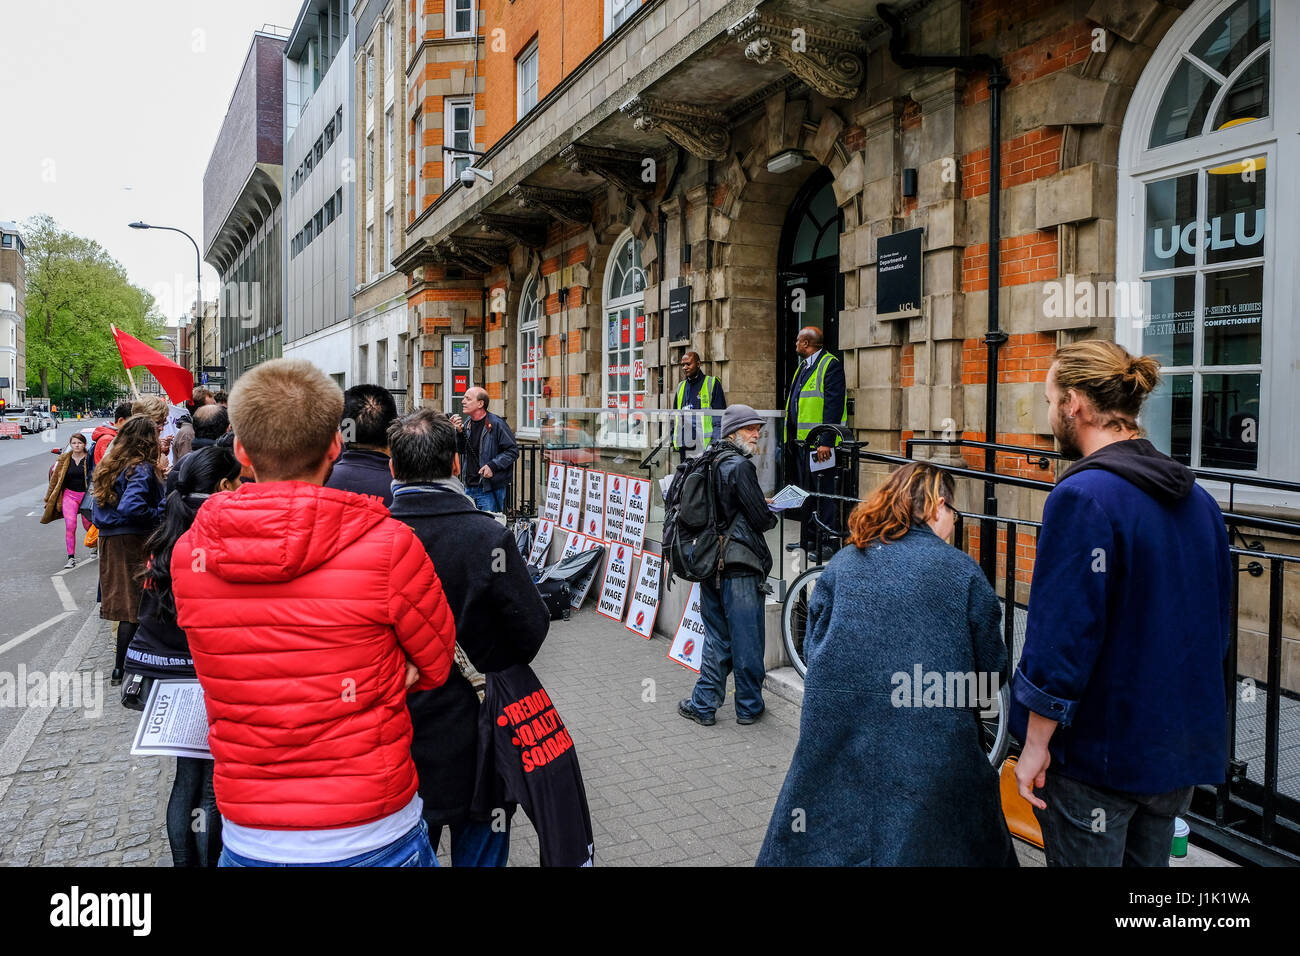 London, UK. 21st April, 2017. Staff of Univeristy College London protest for fair pay outside the Union building - Stock Image